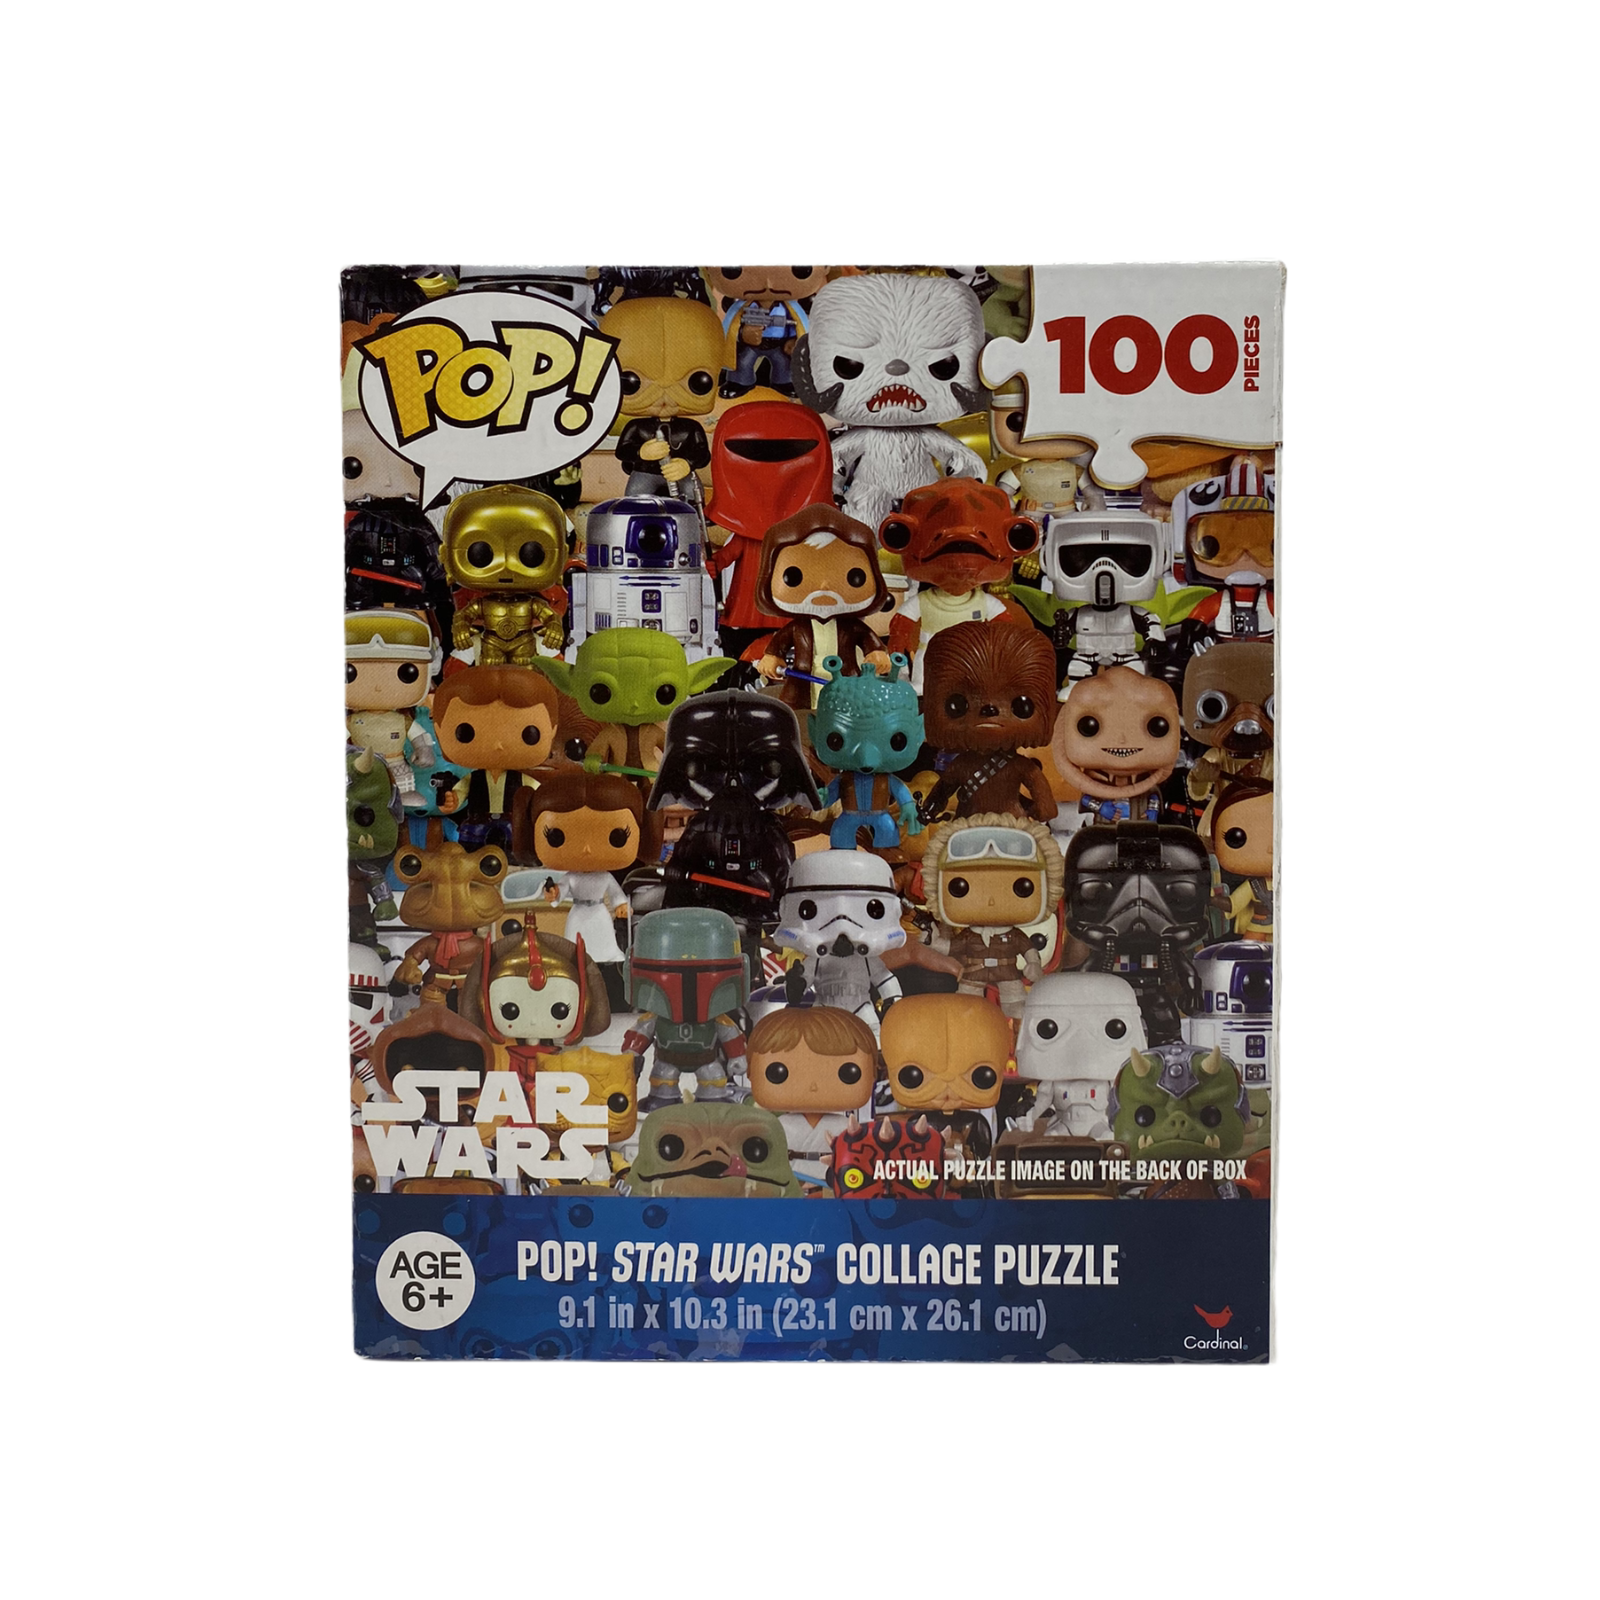 Pop Marvel Heroes Collage Puzzle 100 Pcs Funko Mini Age 6 Cardinal Games For Sale Online Ebay